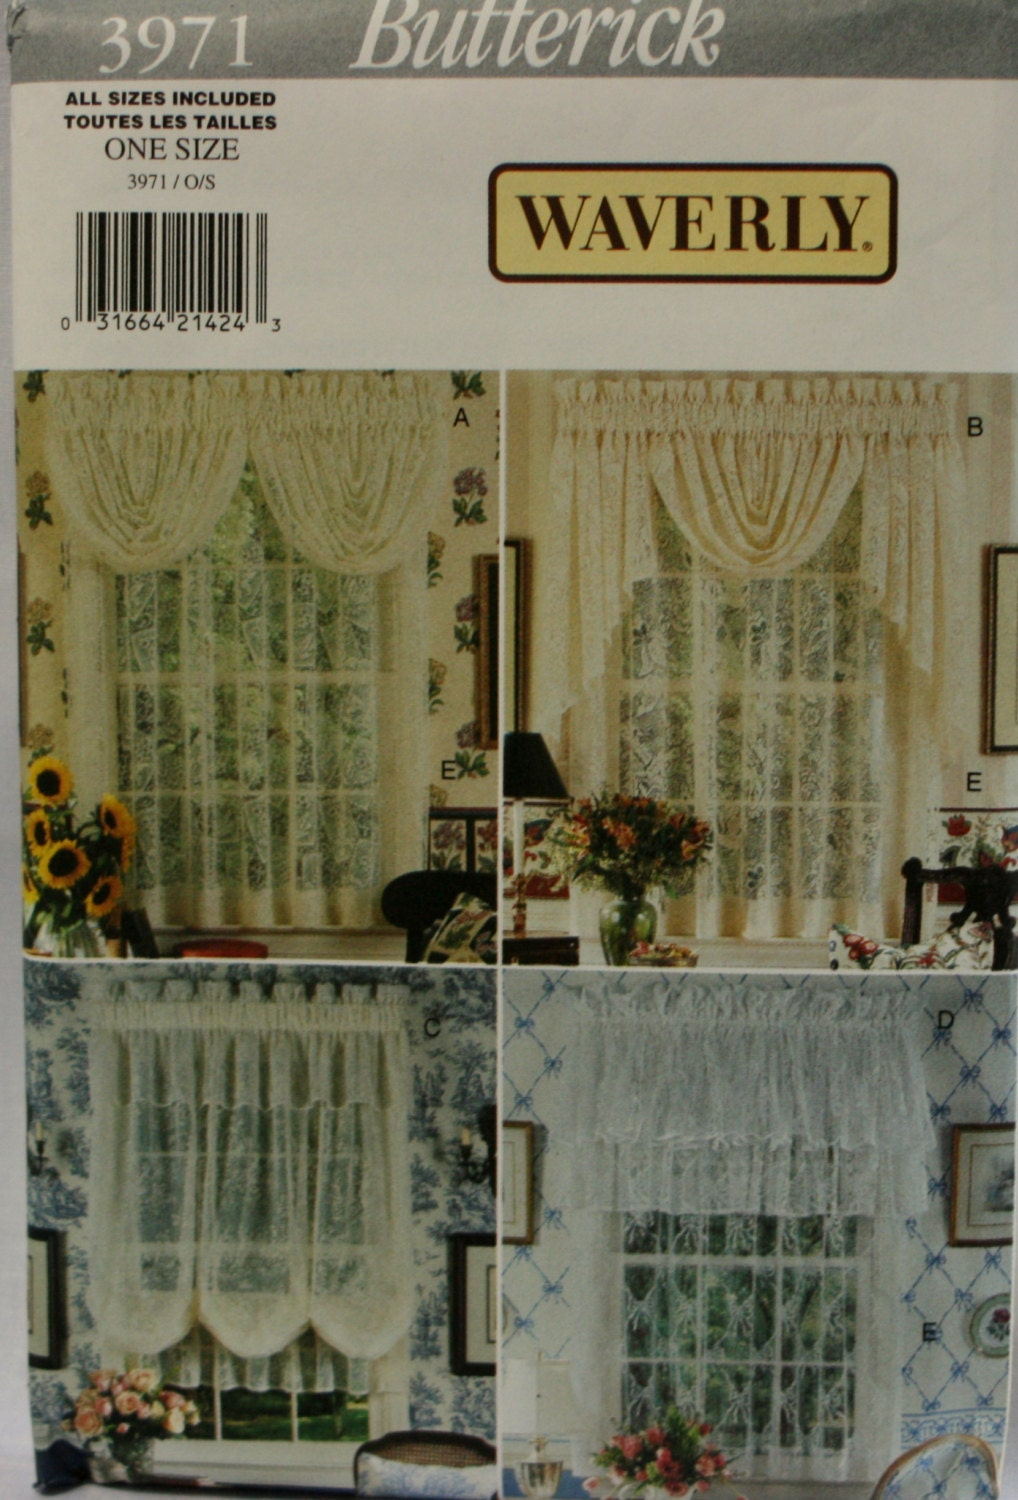 Butterick curtain patterns